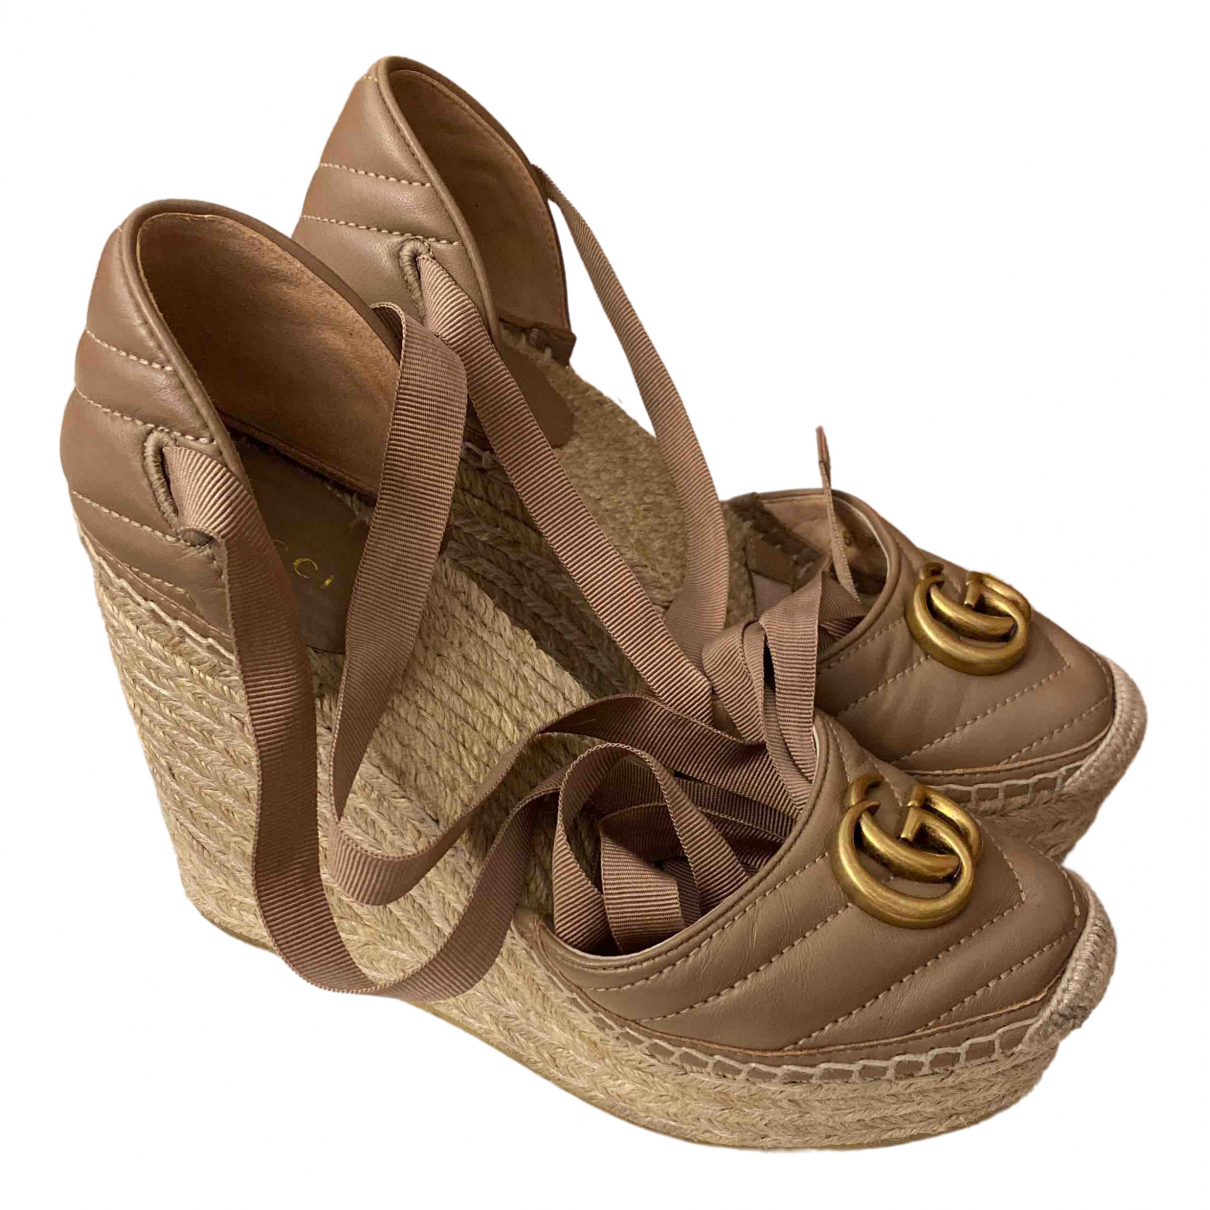 Gucci \N Beige Leather Sandals for Women 37.5 EU